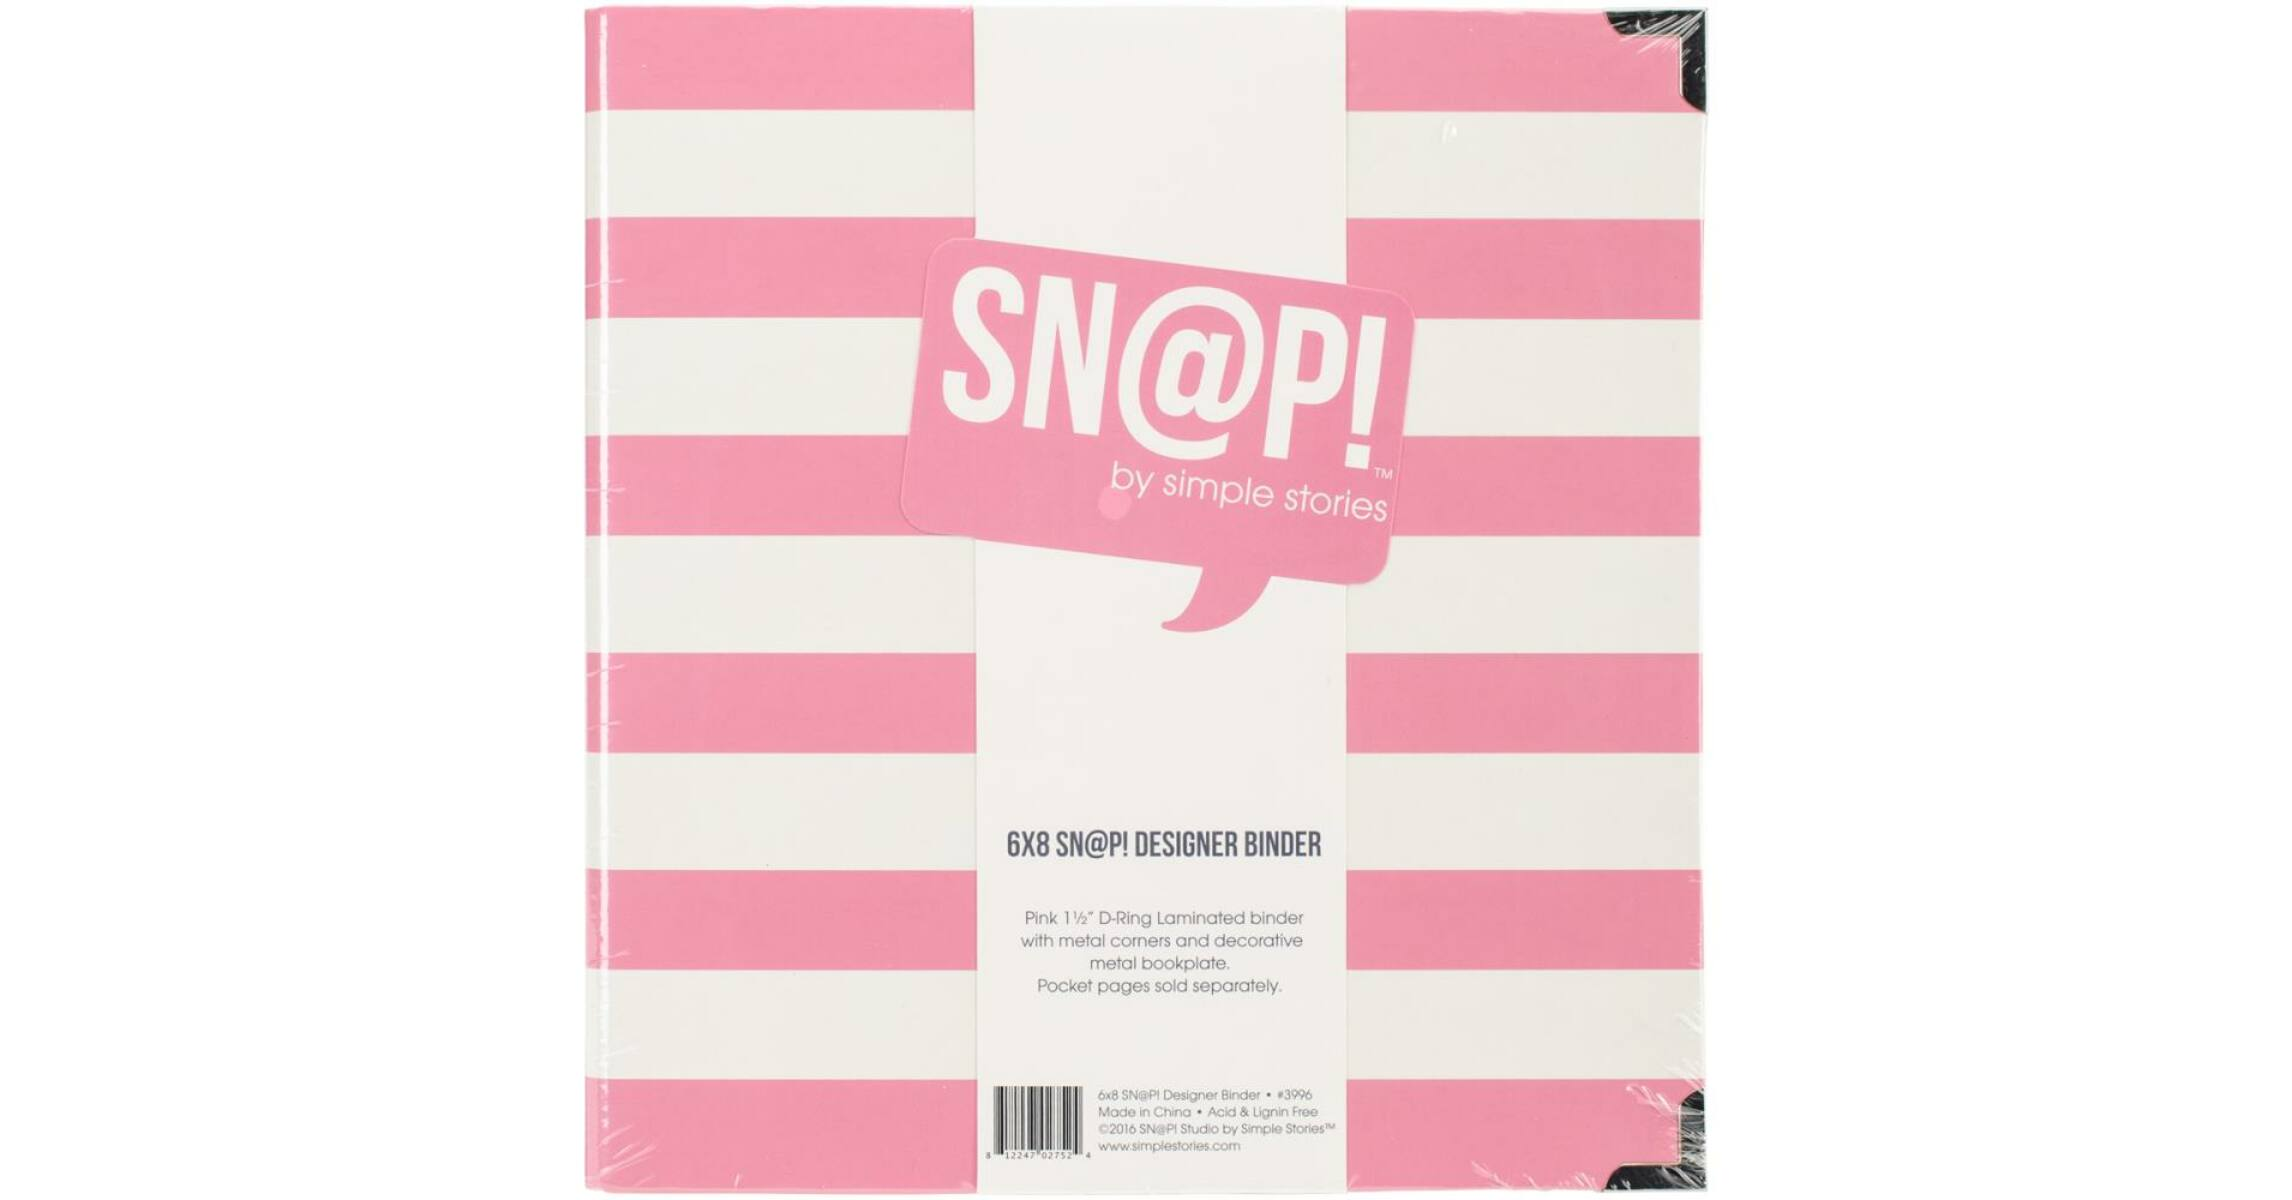 10-Pack Insta Pocket Pages for 6 by 8-Inch Binders with 2 by 2-Inch Pockets Simple Stories Snatp